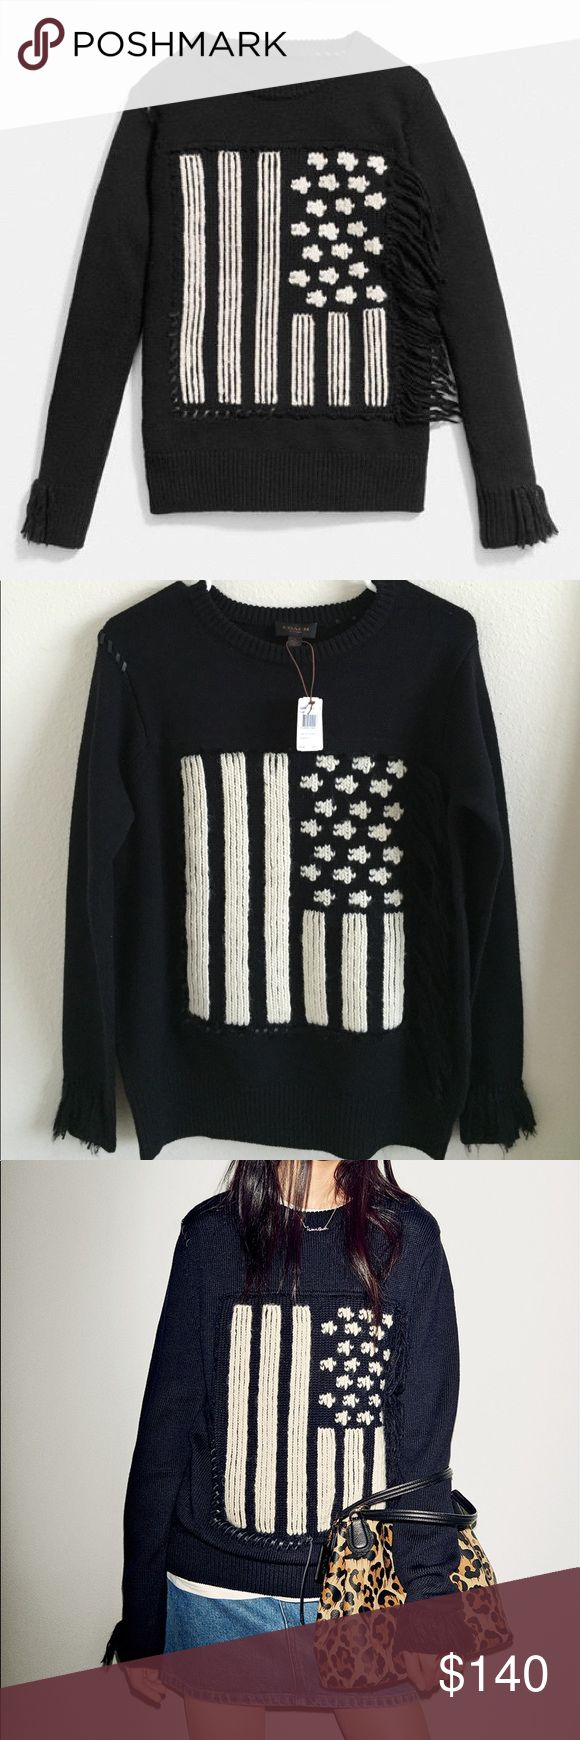 NWT Coach Flag Intarsia Sweater size Small New with tag. Authentic Coach. 100% merino wool.Pure merino wool in a chunky knit imbues this striking rendering of the stars and stripes with luxurious softness and exceptional warmth. Its monochrome motif is intarsia-knit by hand for clear, inlaid fields of contrast color, then hand-appliquéd using Rip and Repair baseball-stitch details. Hand-applied fringe. Black sweater and the flag is an oatmeal/cream color. Coach Sweaters Crew & Scoop Necks